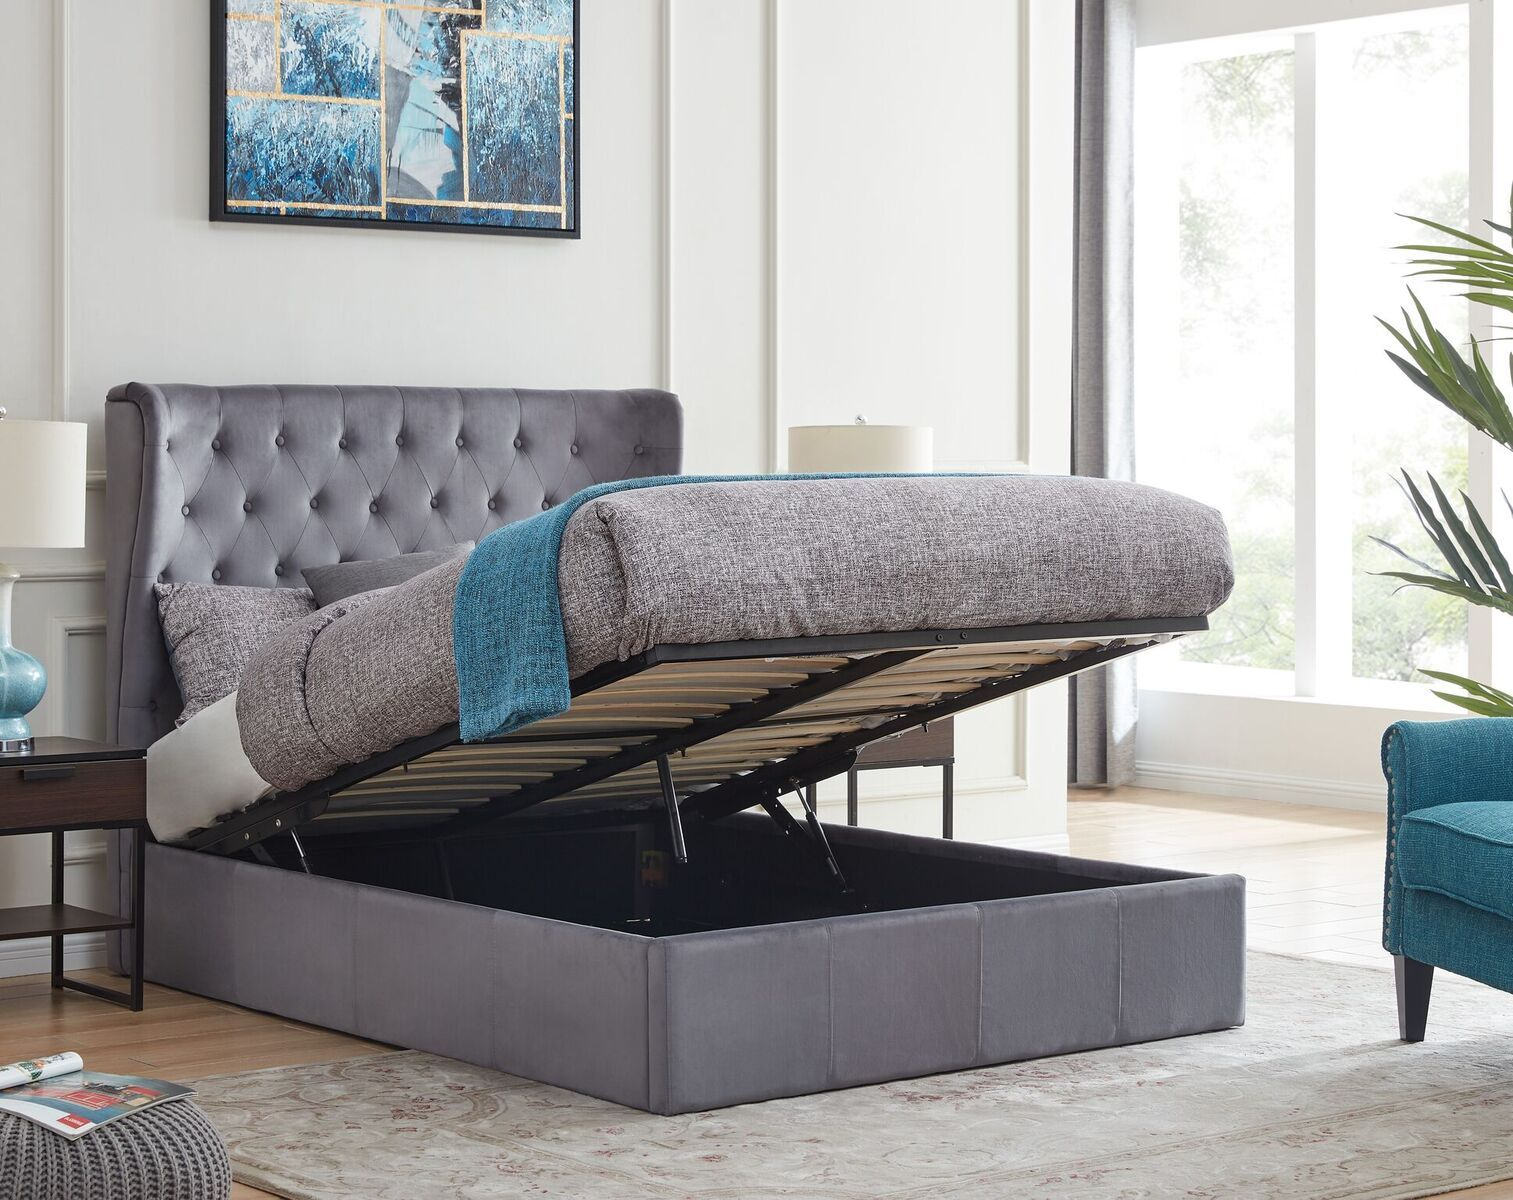 Holway Grey ottoman bed with winged headboard-ottoman beds-bedsmart